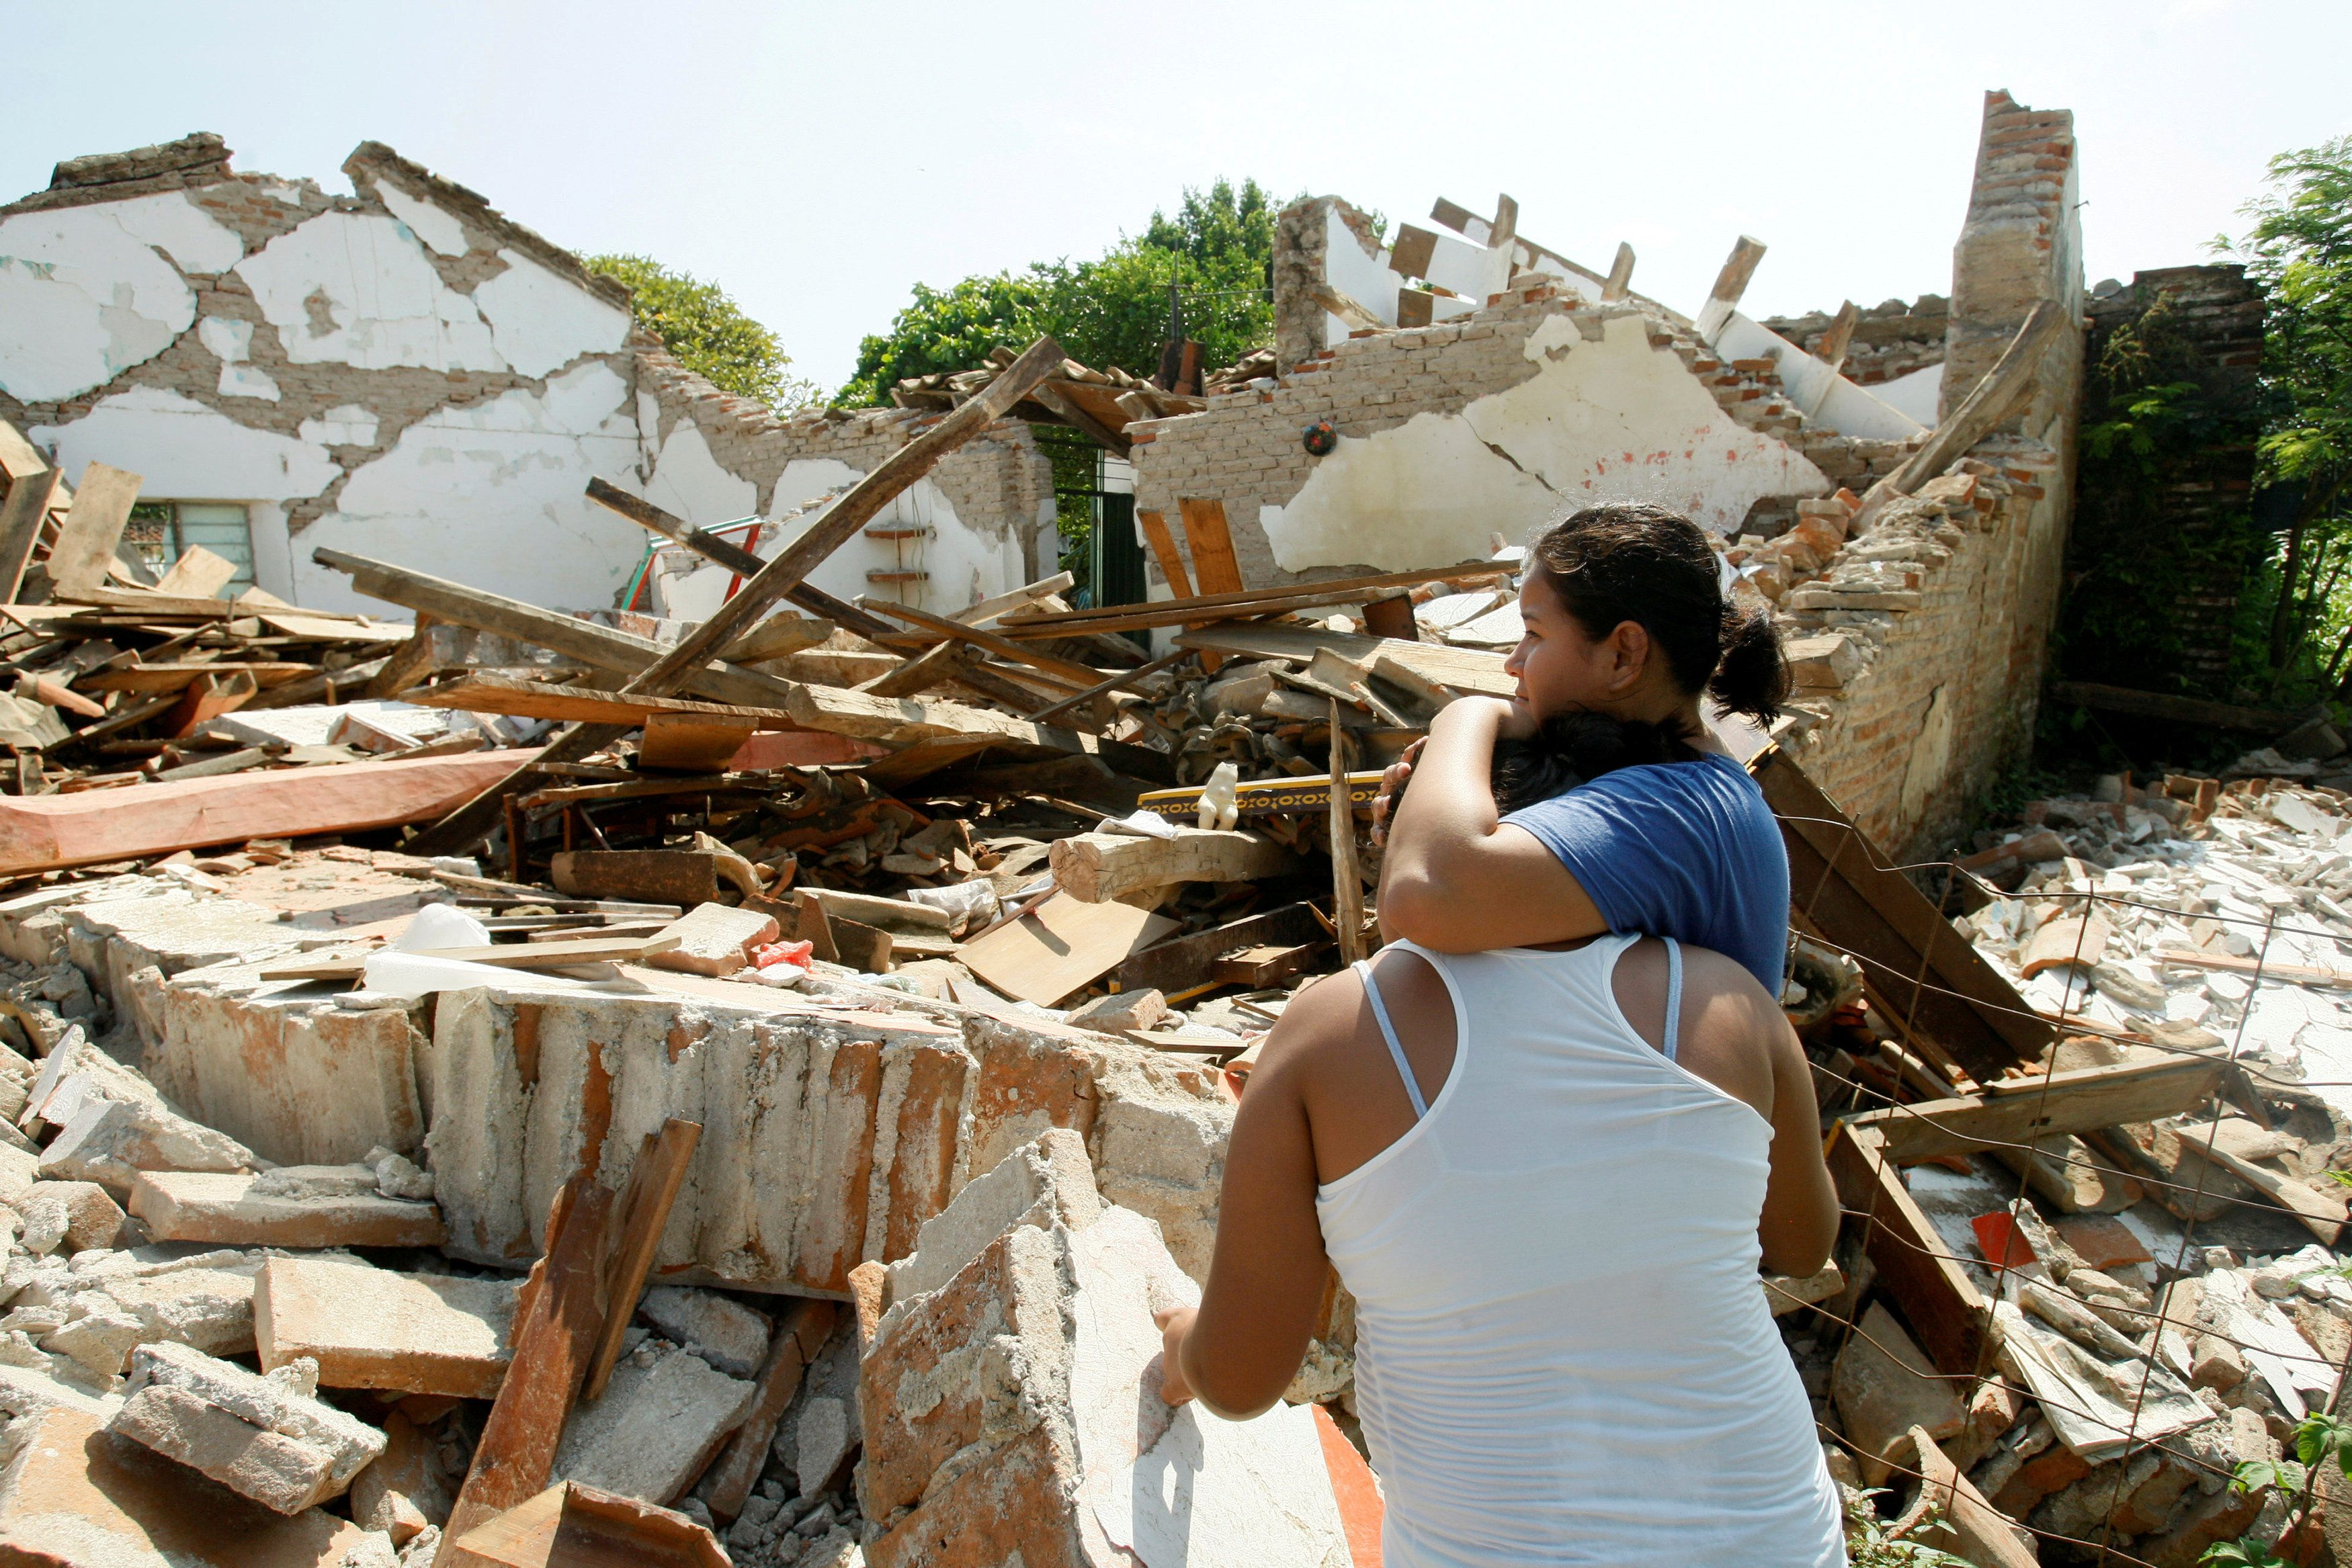 Women hug while standing next to a destroyed house after an earthquake struck the southern coast of Mexico late on Thursday, in Union Hidalgo, Mexico September 9, 2017. REUTERS/Jorge Luis Plata     TPX IMAGES OF THE DAY